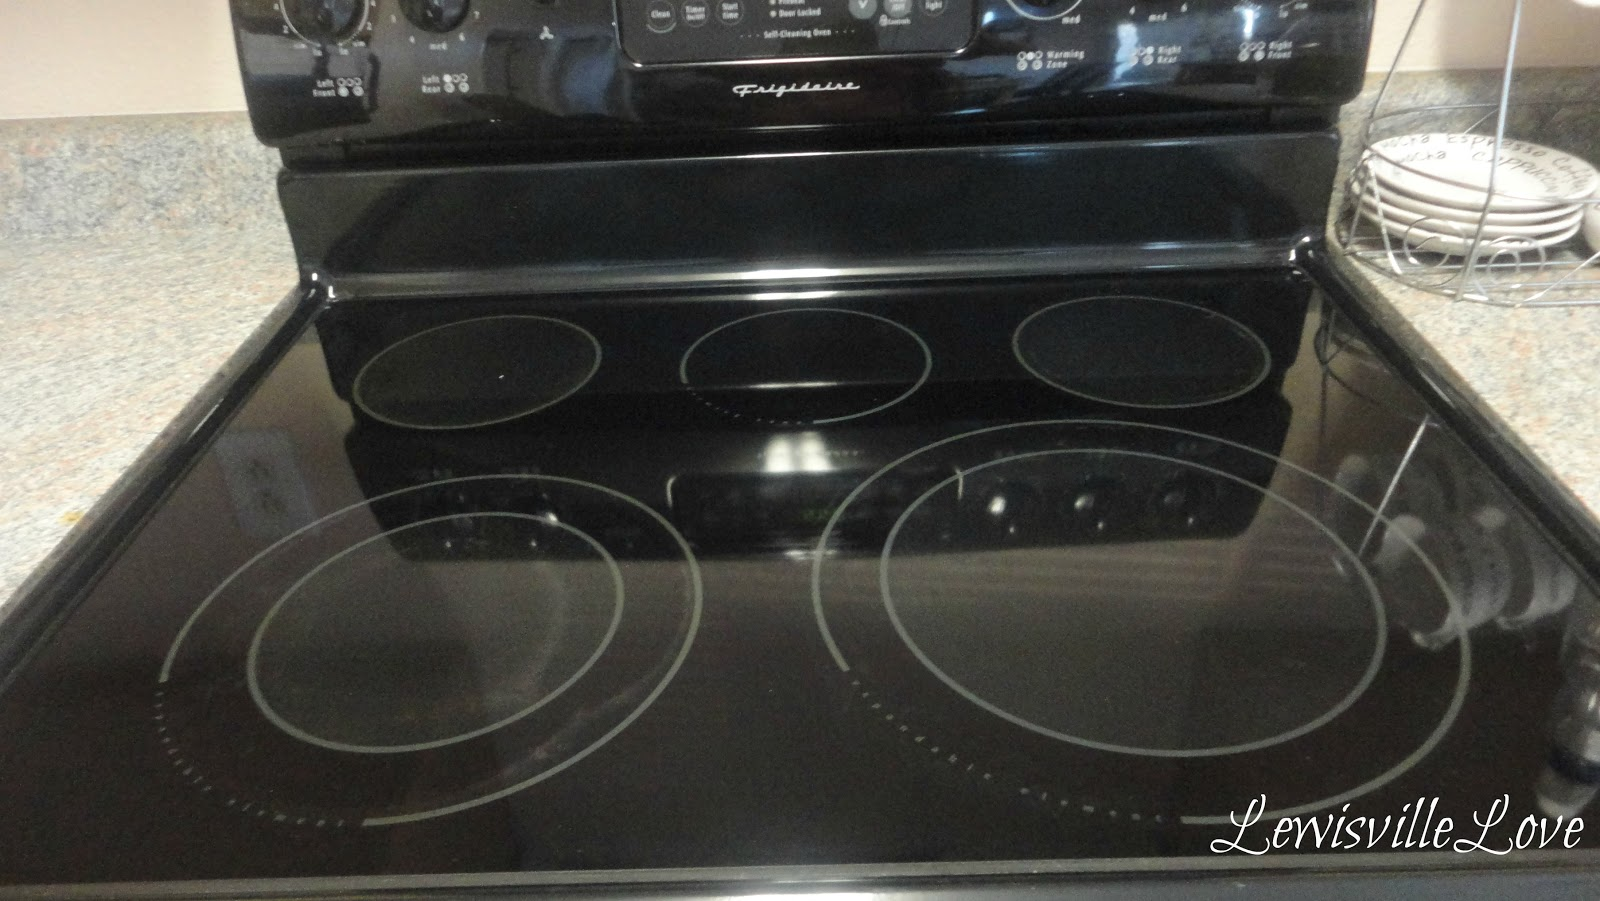 Lewisville love how to clean a glass top stove How to clean top of oven